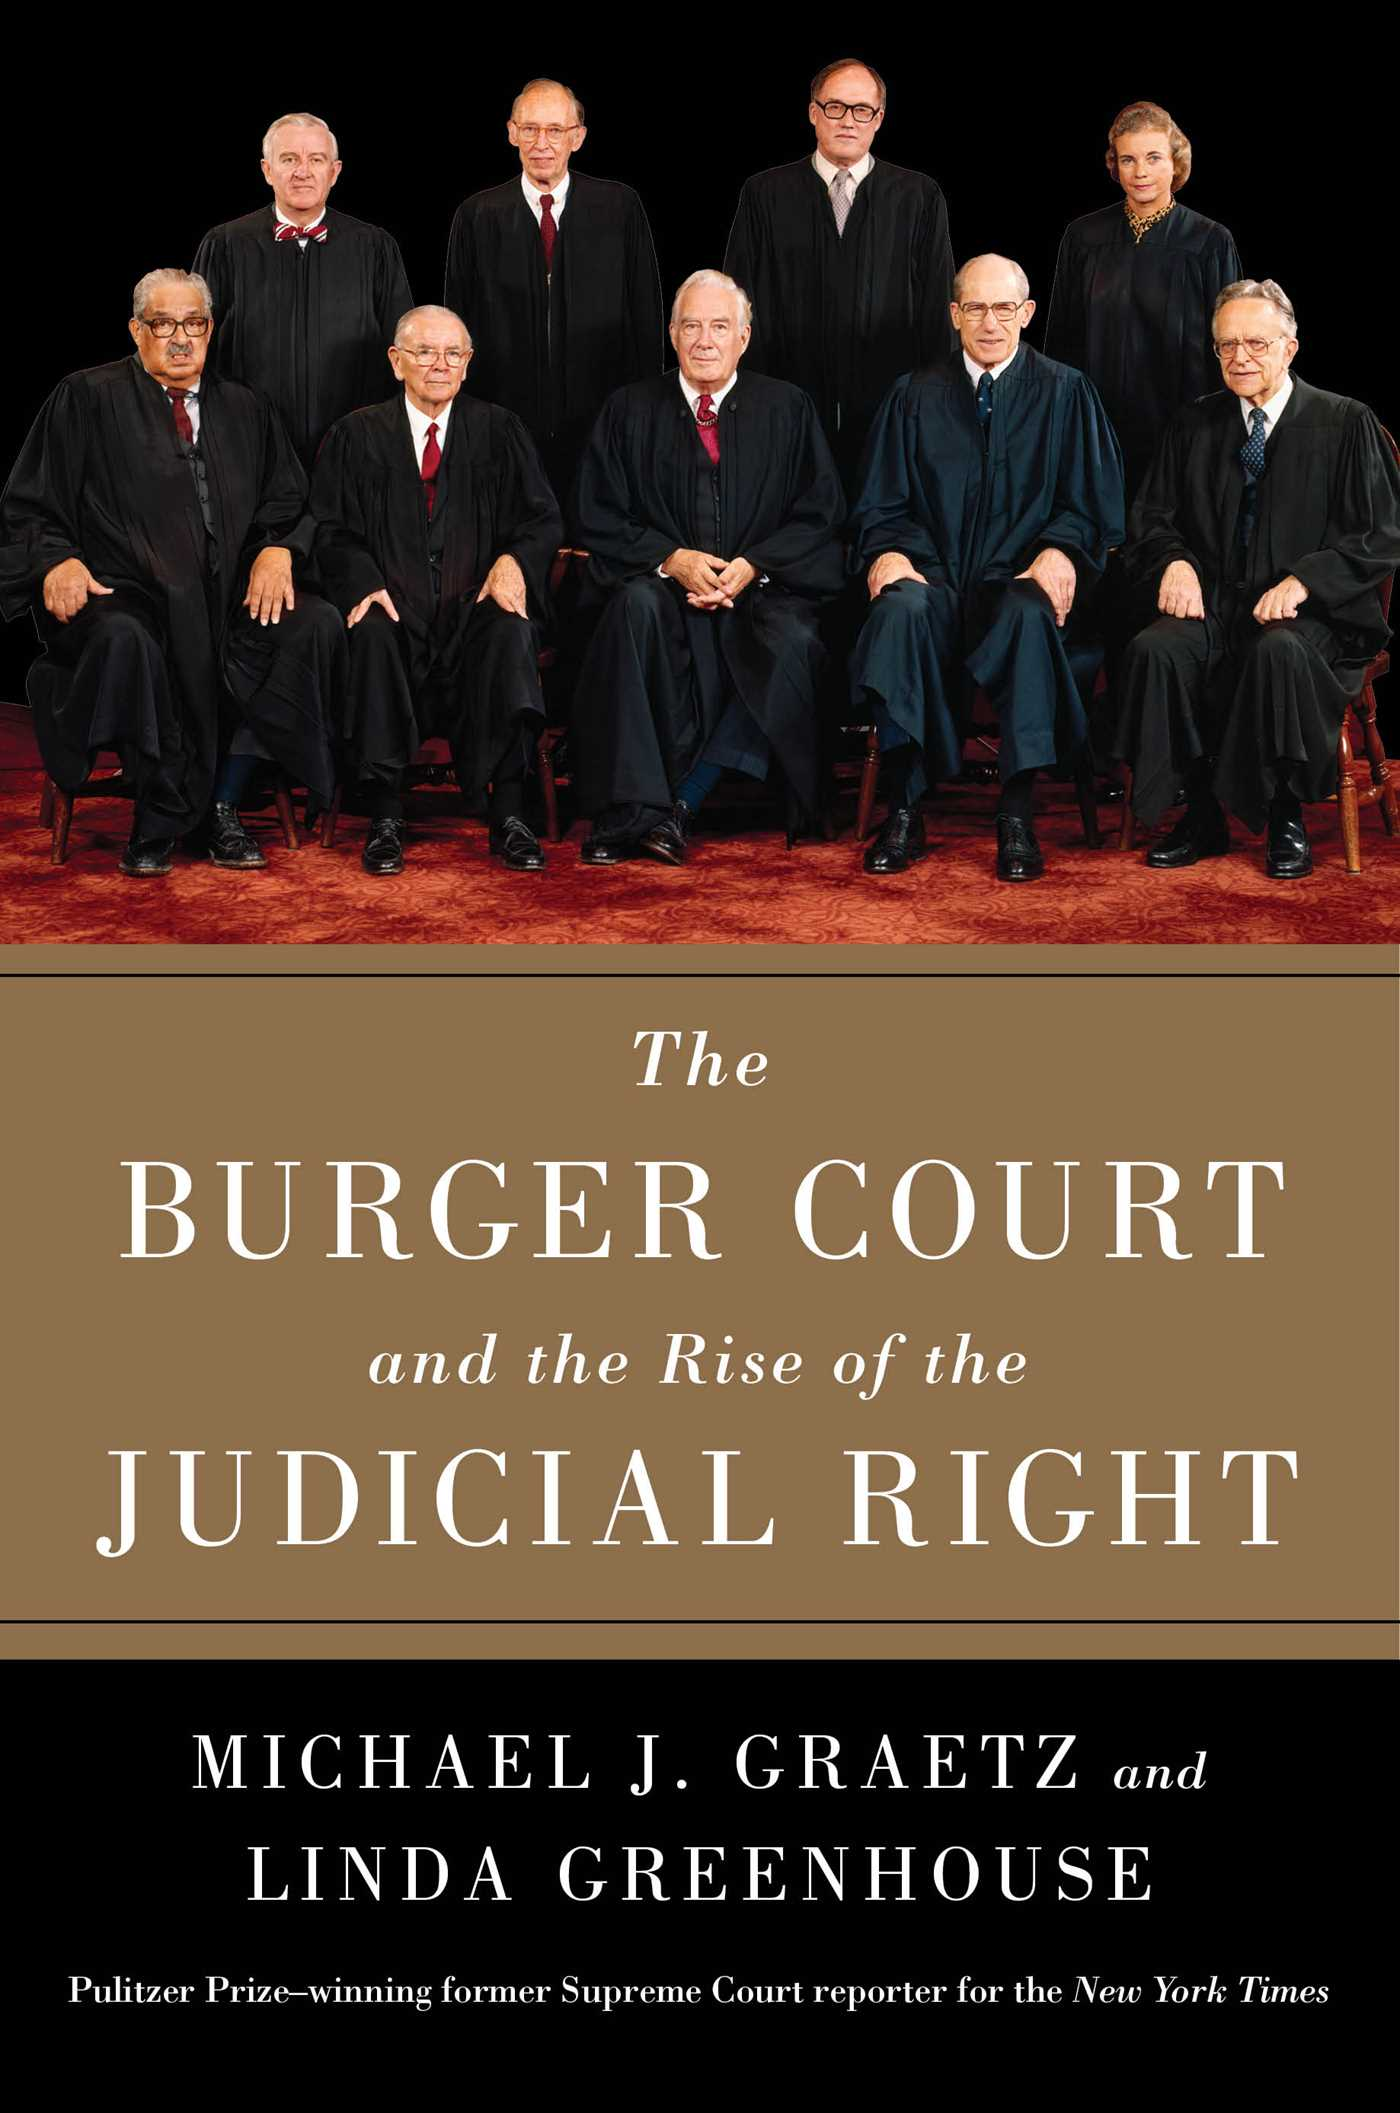 The burger court and the rise of the judicial right 9781476732503 hr